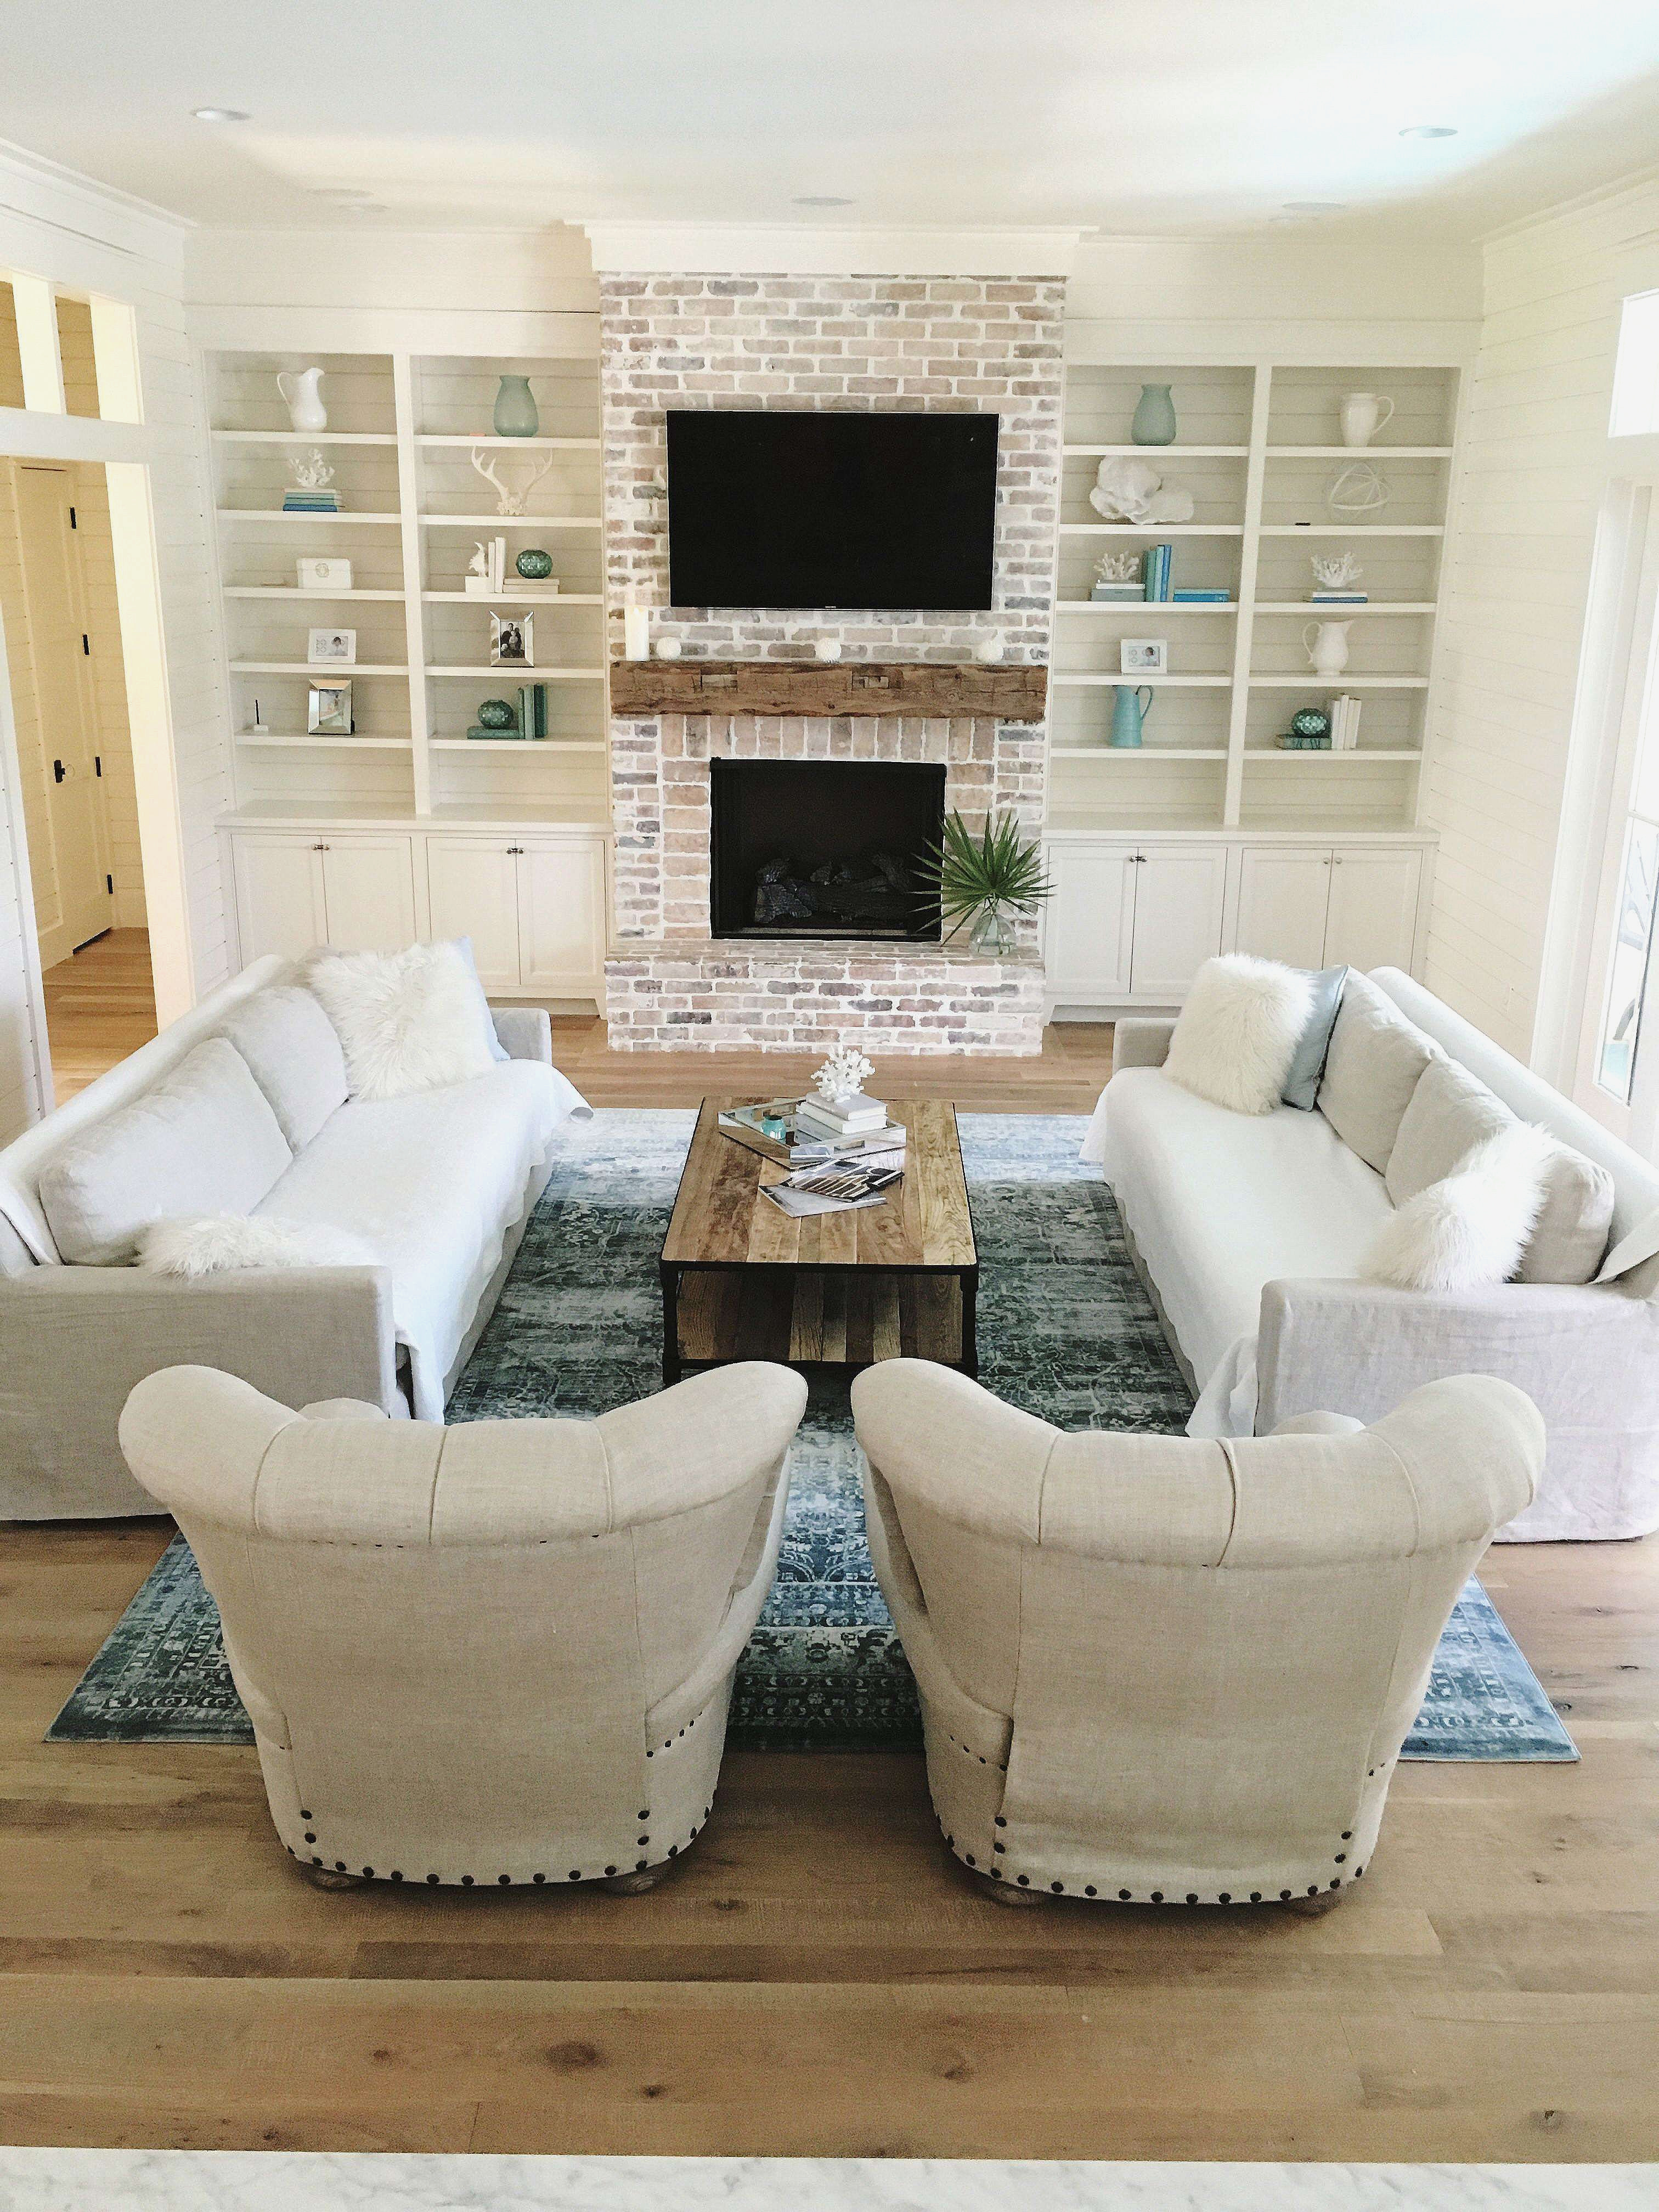 Best Sofa Mart Chairs Home Design Very Nice Marvelous Decorating On Throughout Widely Used Sofa Mart Chairs (View 8 of 20)